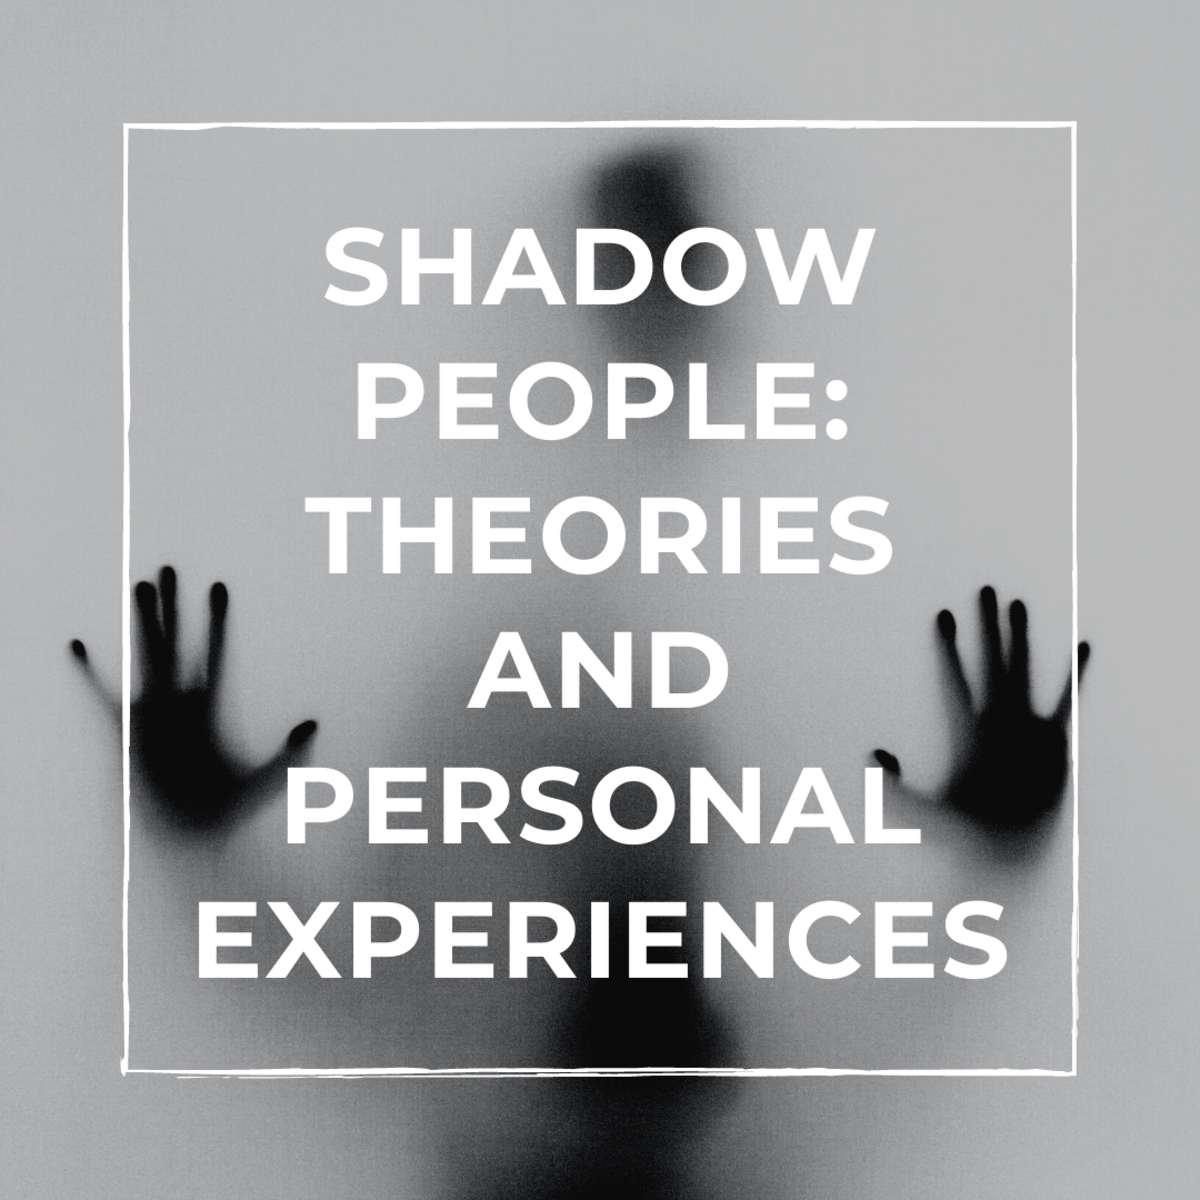 Shadow People: Theories and Personal Experiences